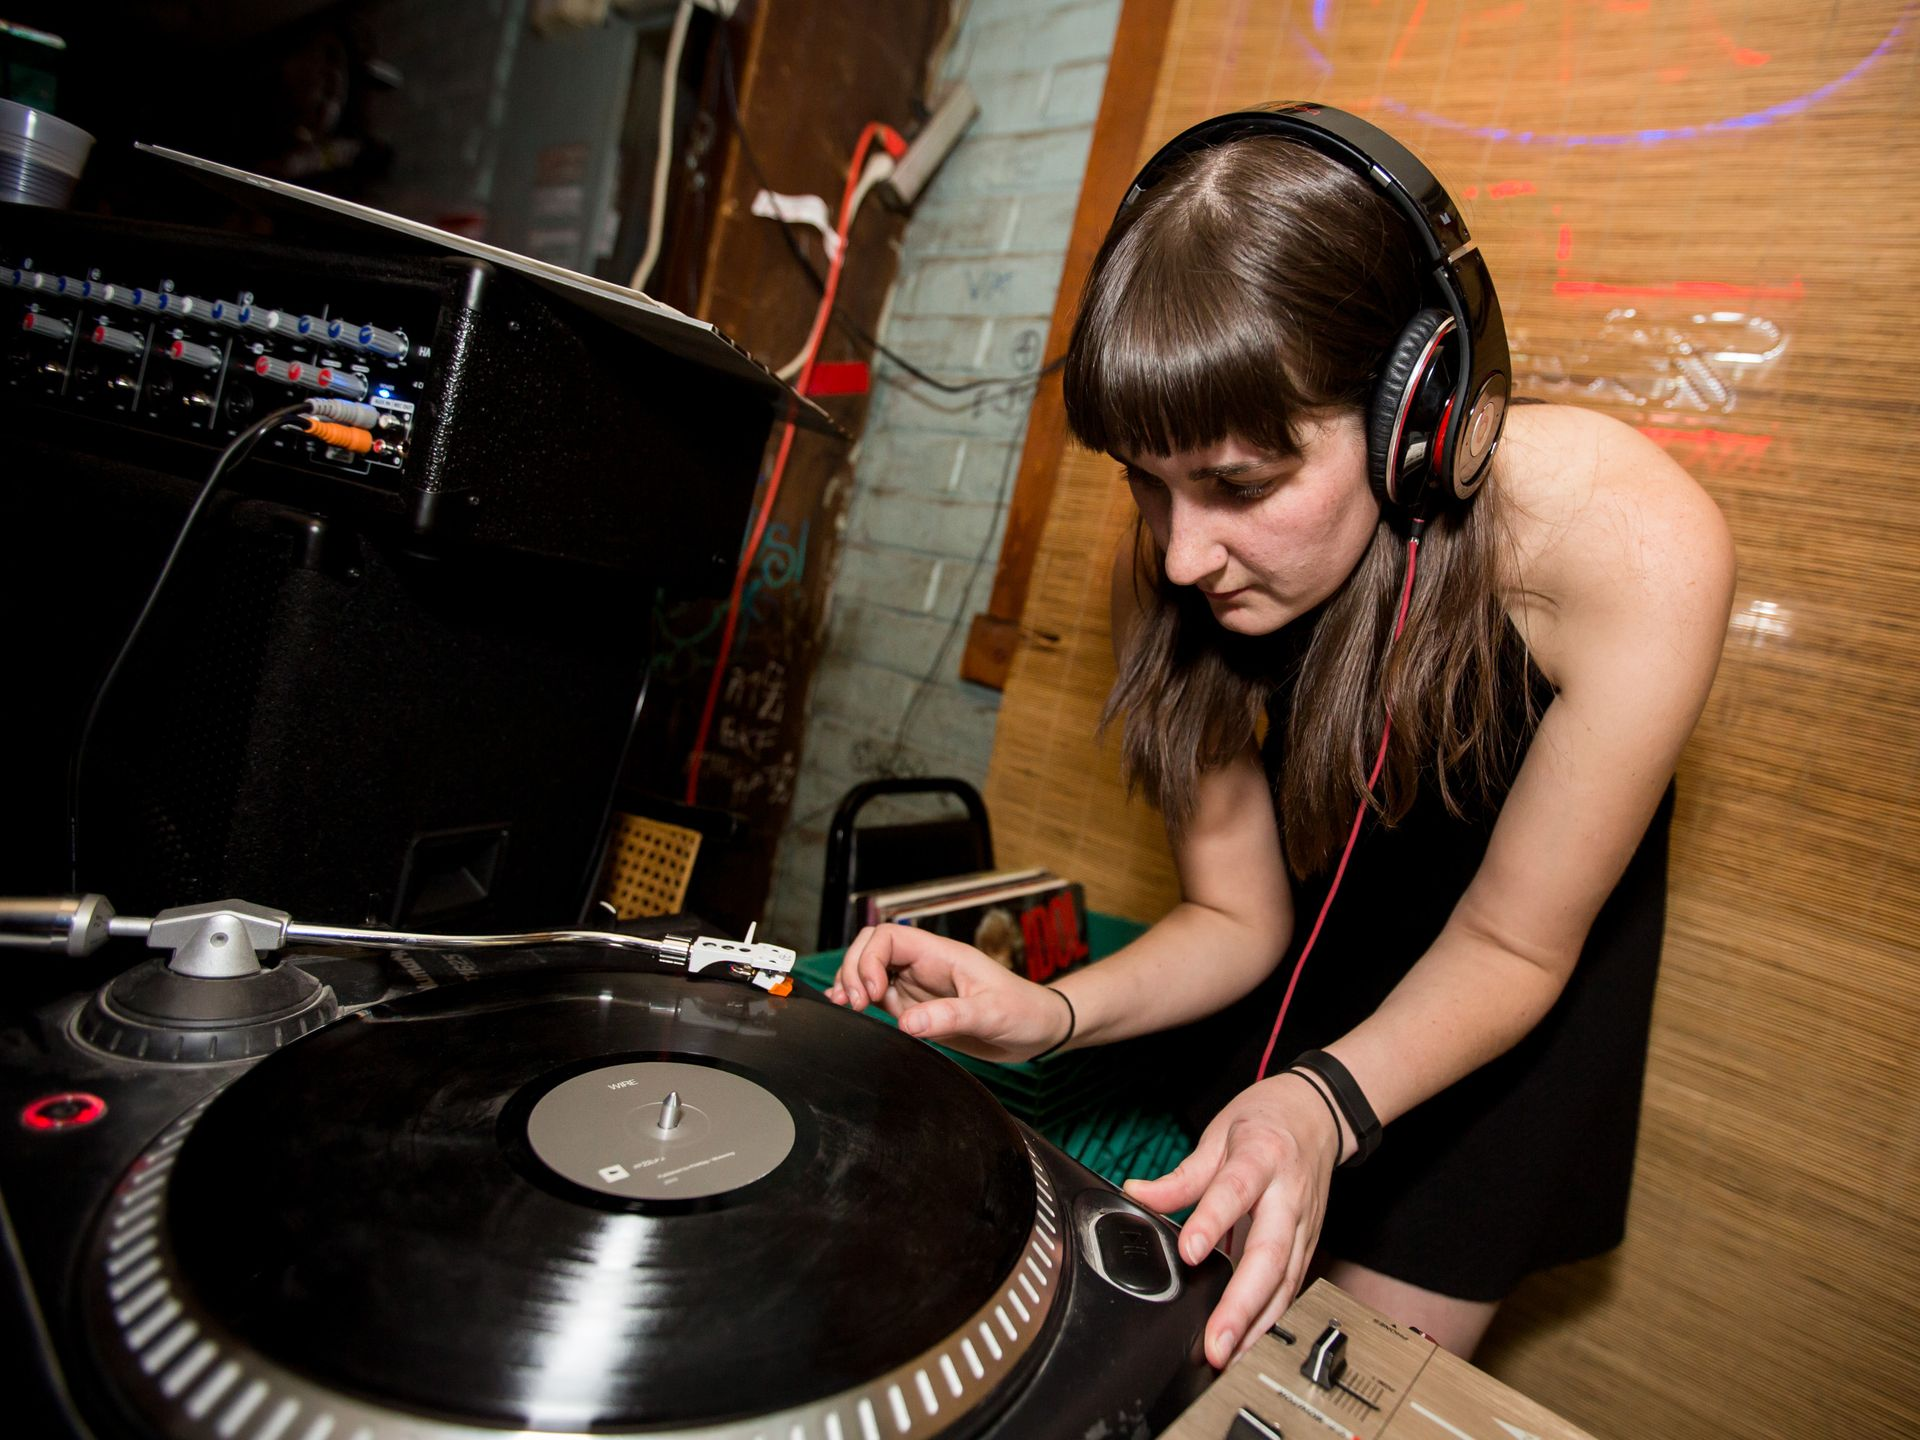 A Claire Slattery at Butthurt Valentine's Party - Photo by Melissa Fossum